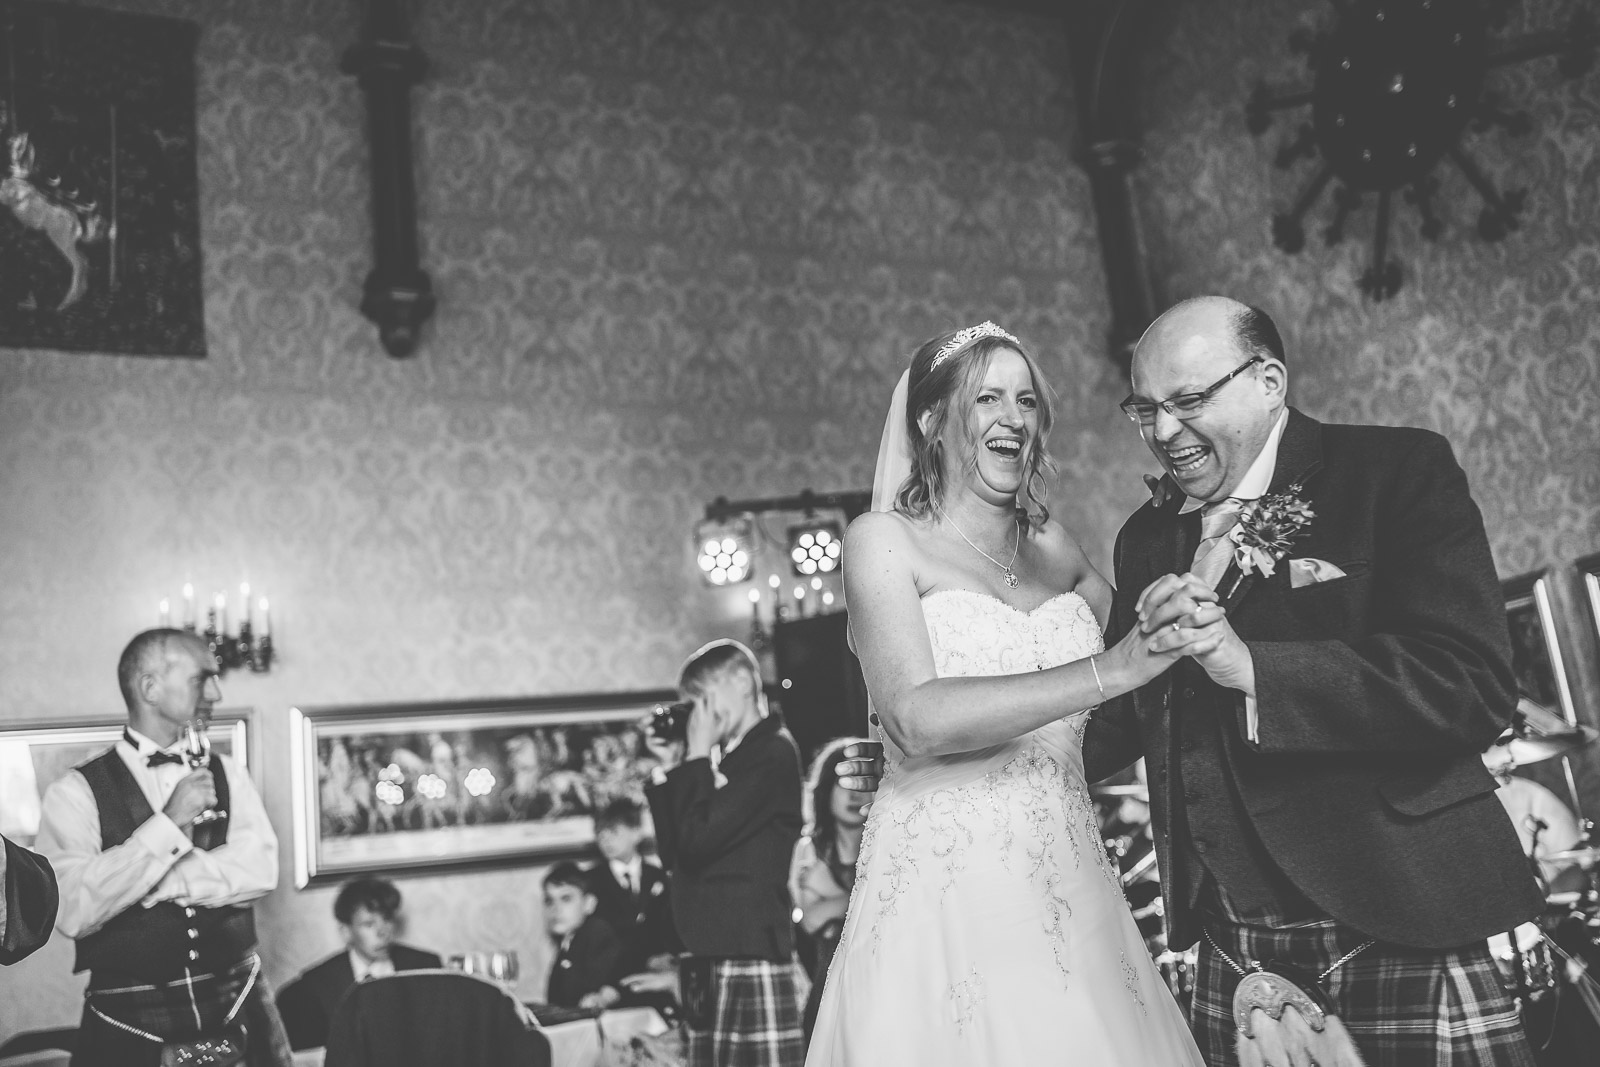 dalhousie_castle_wedding_edinburgh_dearlyphotography (327 of 371).jpg